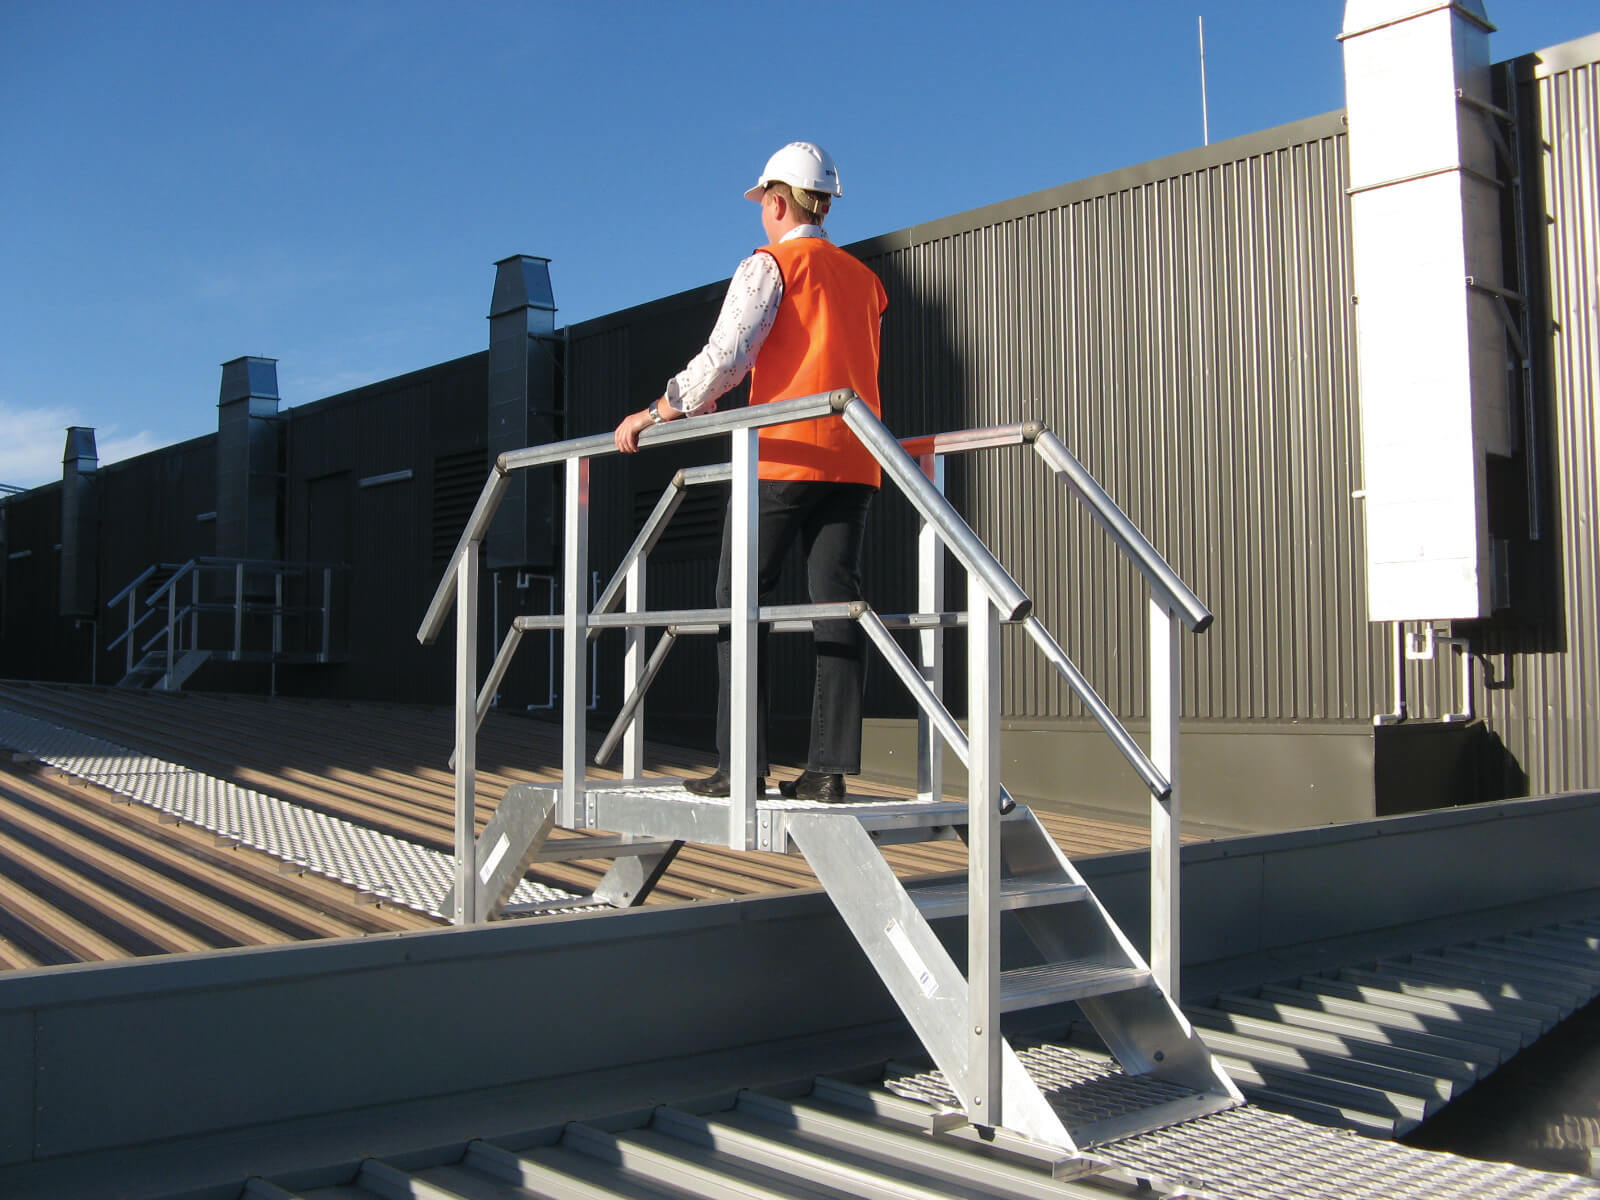 Step Ladder bridge - Sydney NSW - Roof Safety System - Height Safety - Secure Height Systems